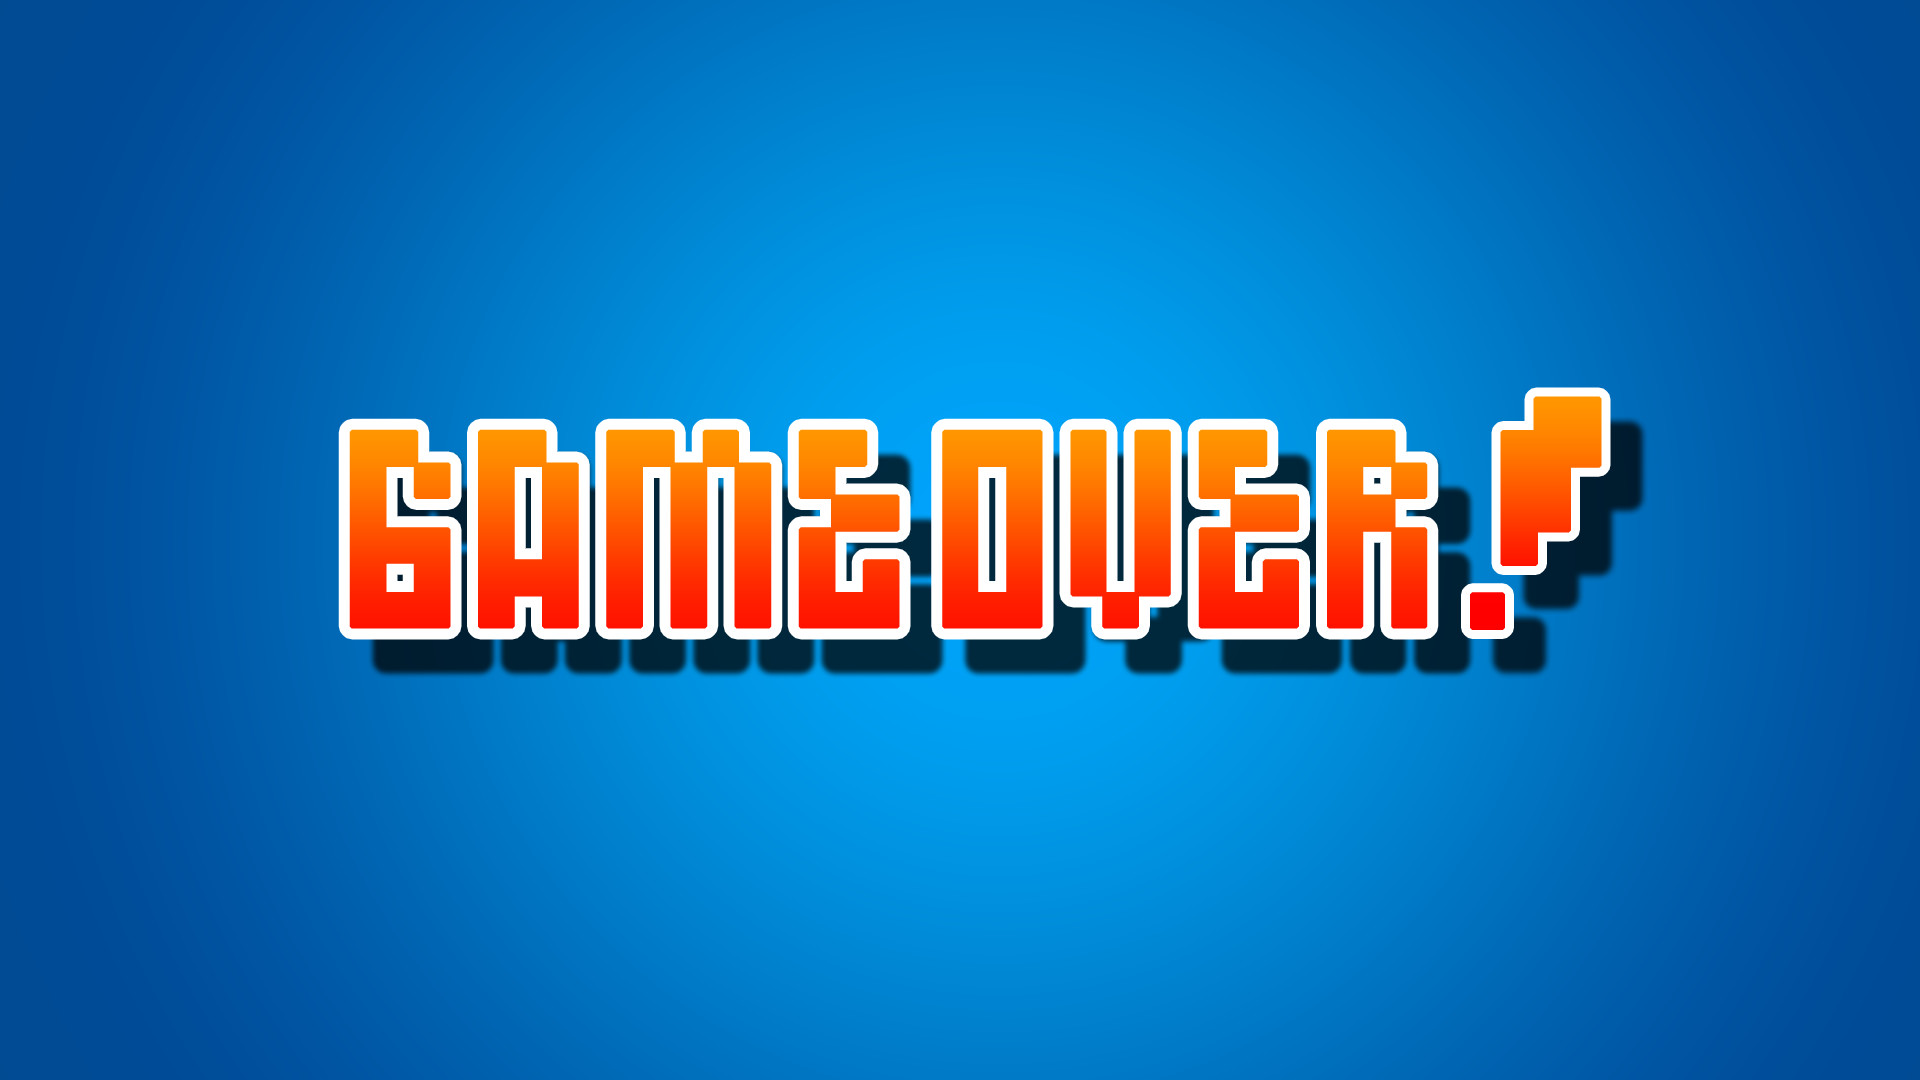 Game Over 2048×1152 Resolution